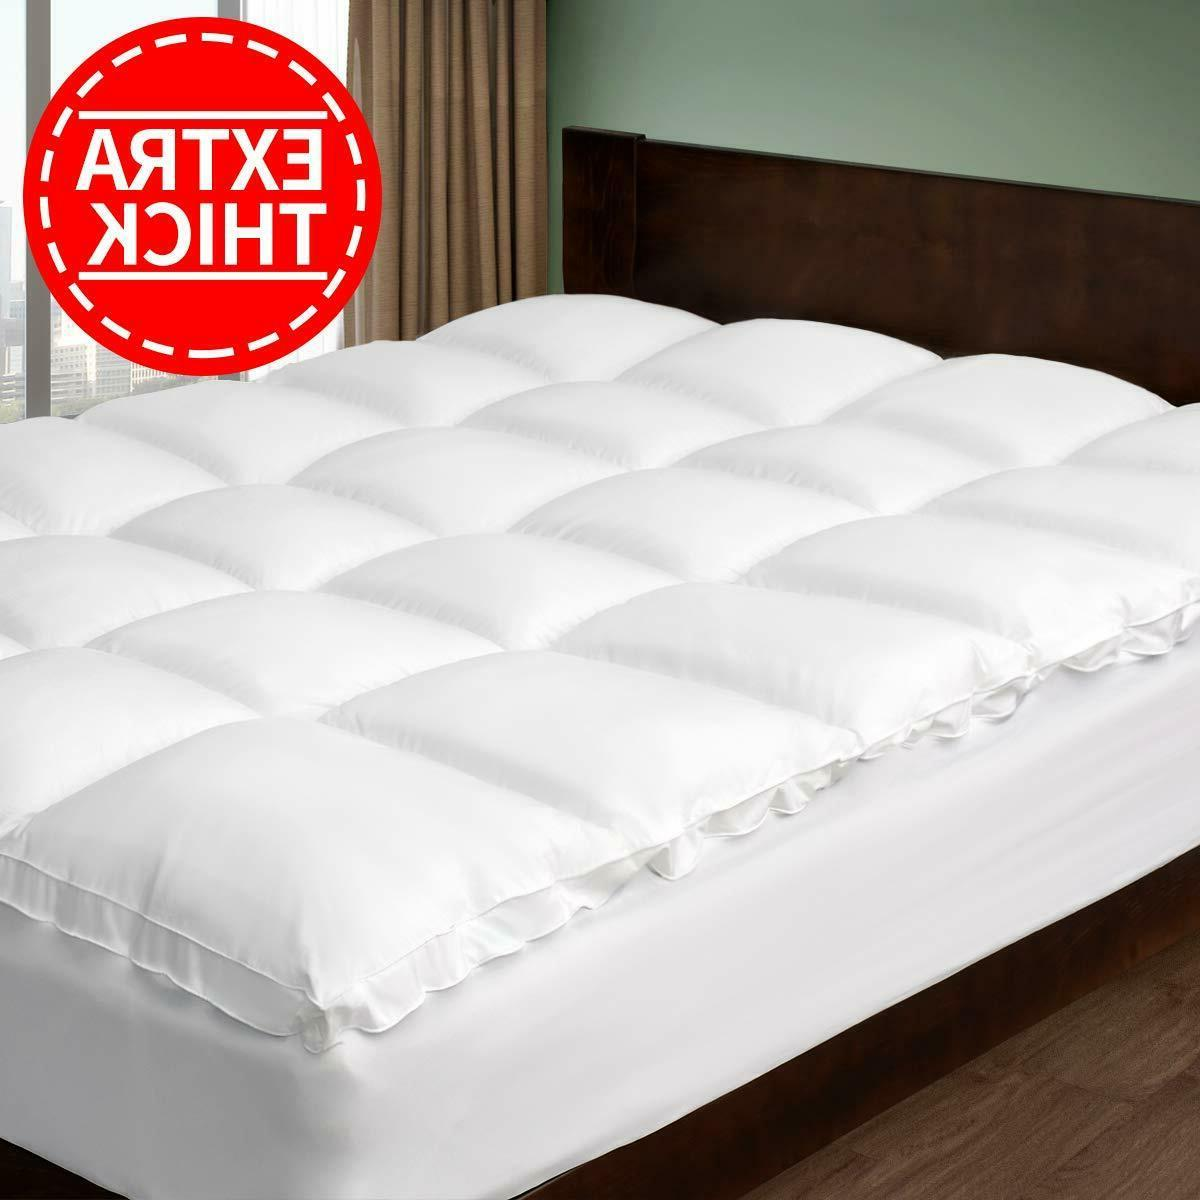 2 extra thick mattress topper cooling cotton